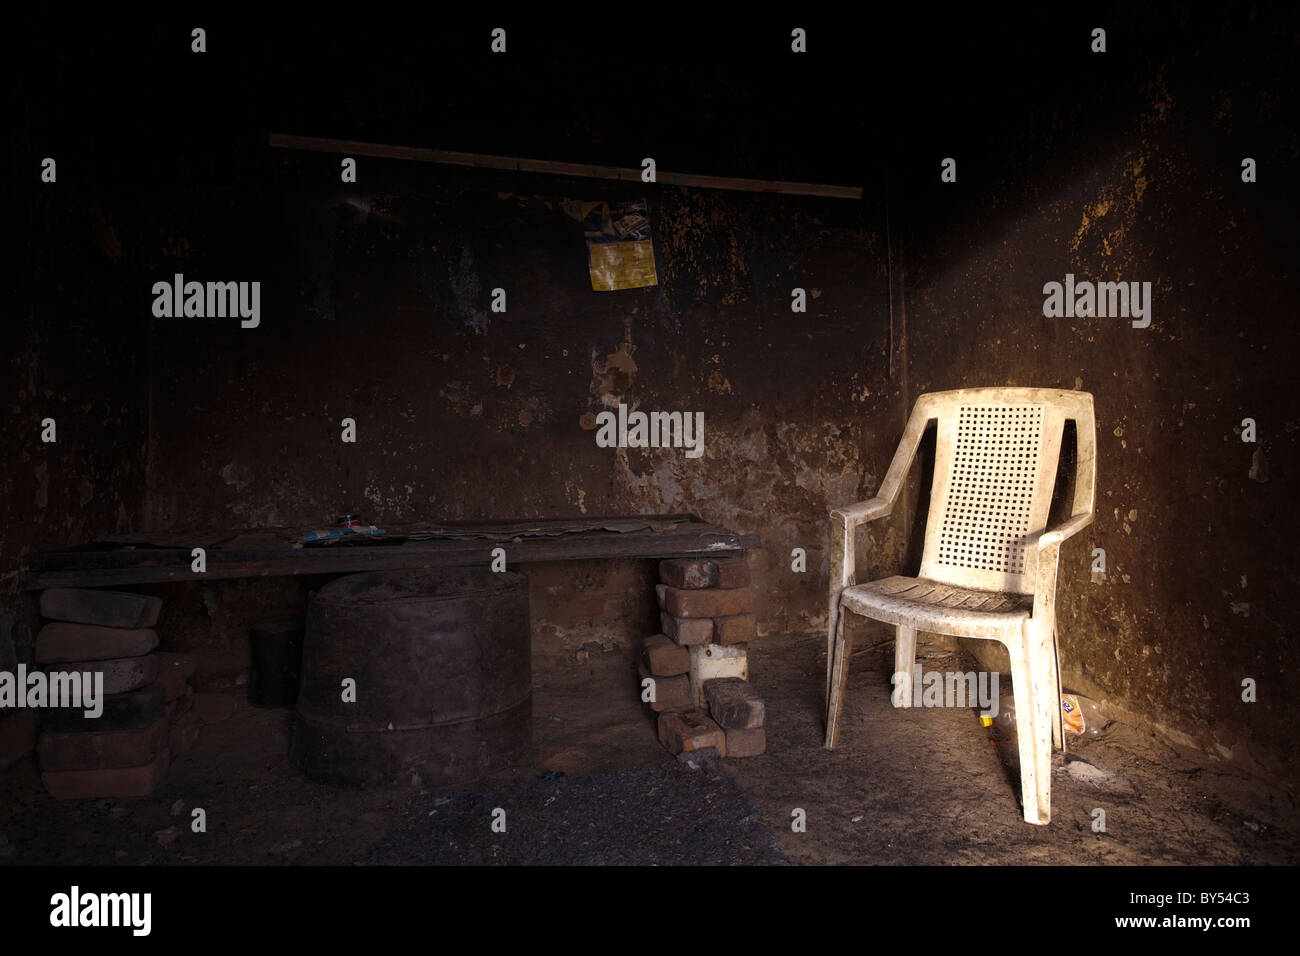 A chair in a shack used by temporary labourers on a Karoo farm. - Stock Image